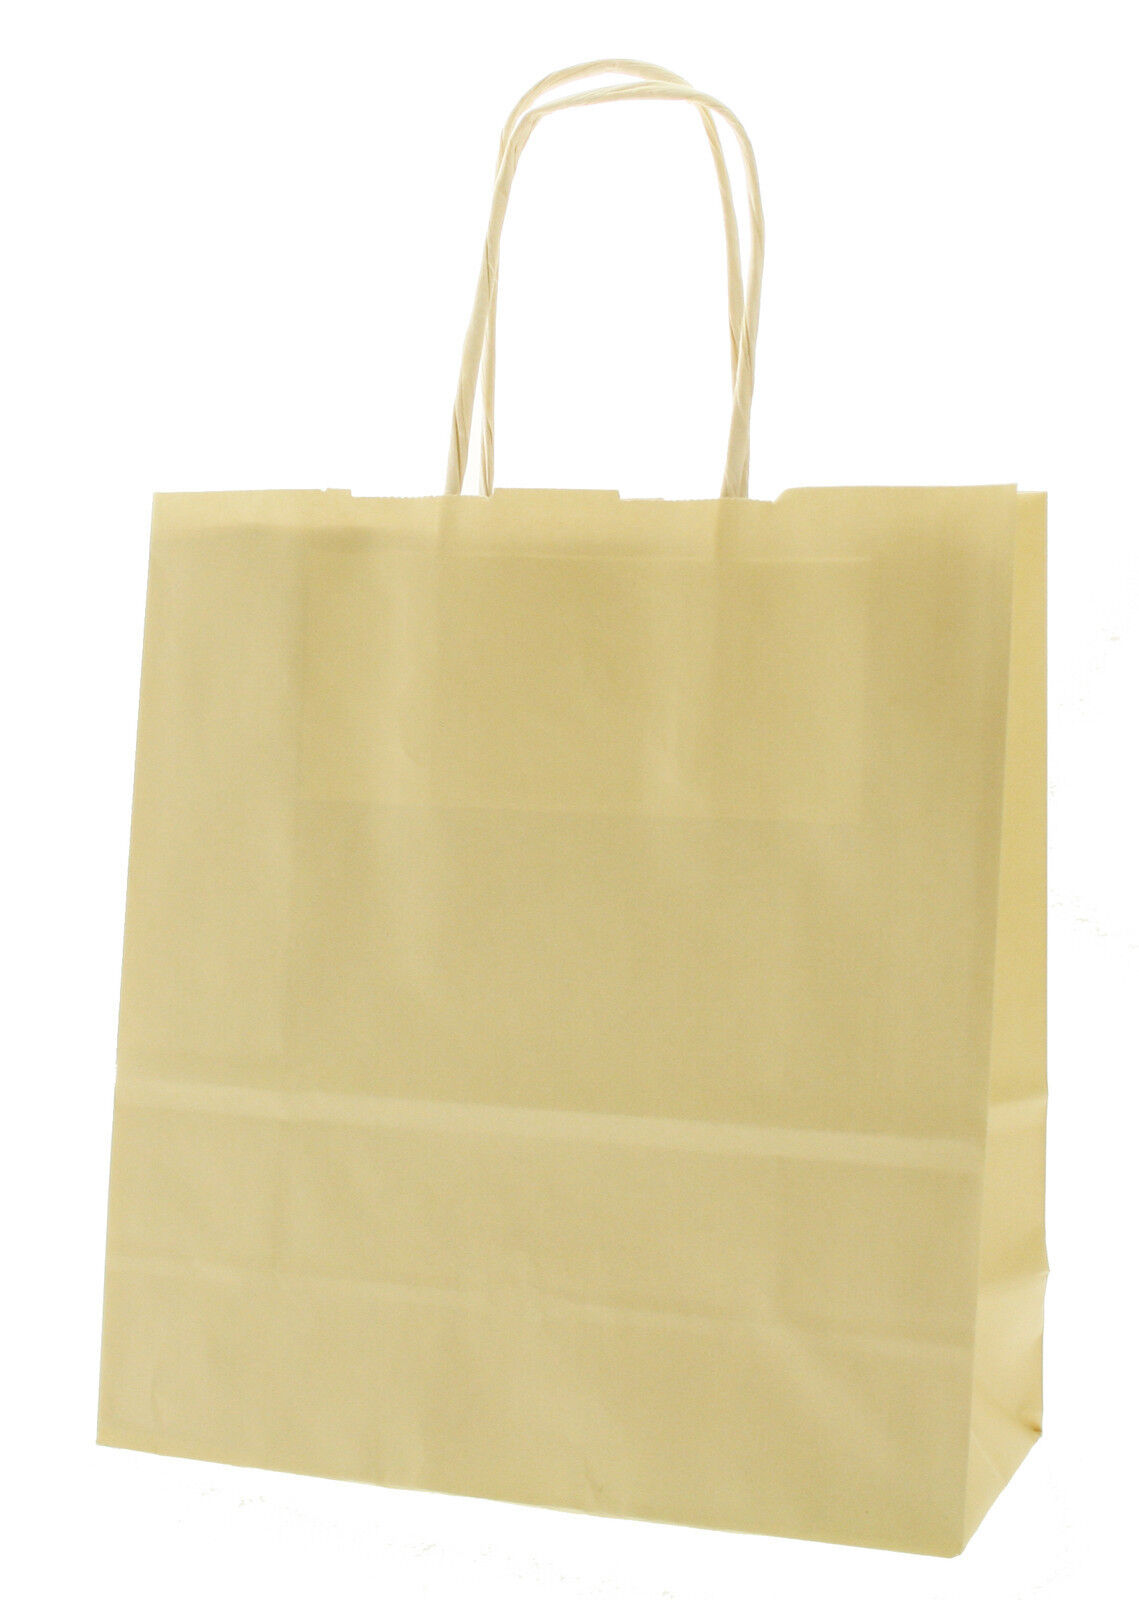 Cream Party Paper Carrier Bags with Twisted Paper Handles - Size  20 x 18 x 8